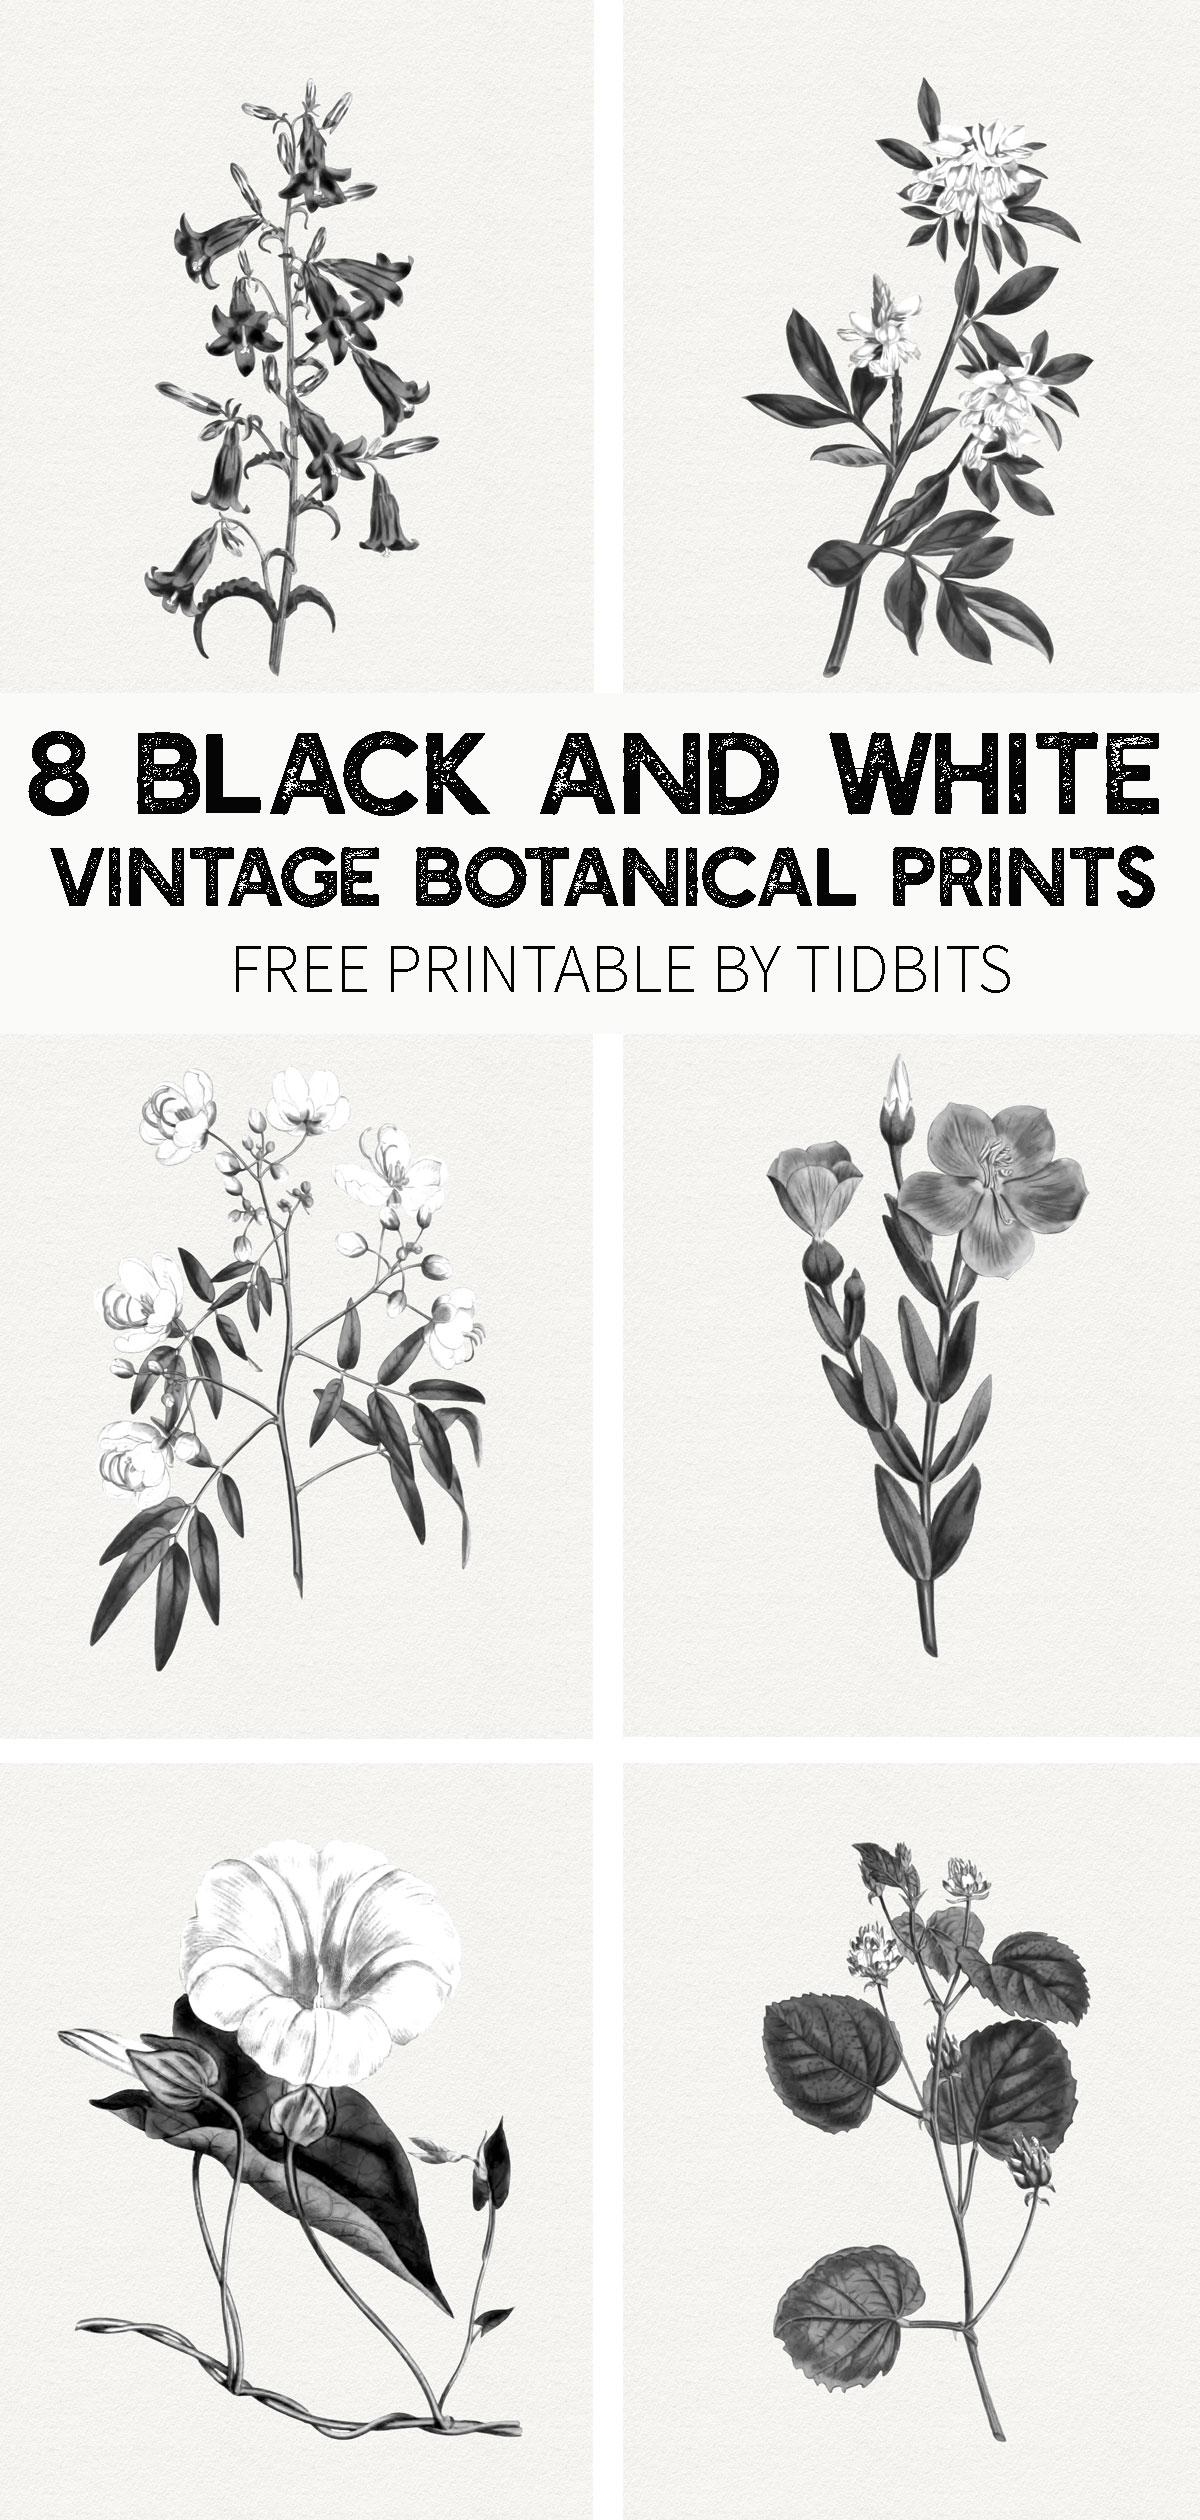 Free Black and White Vintage Botanical Prints